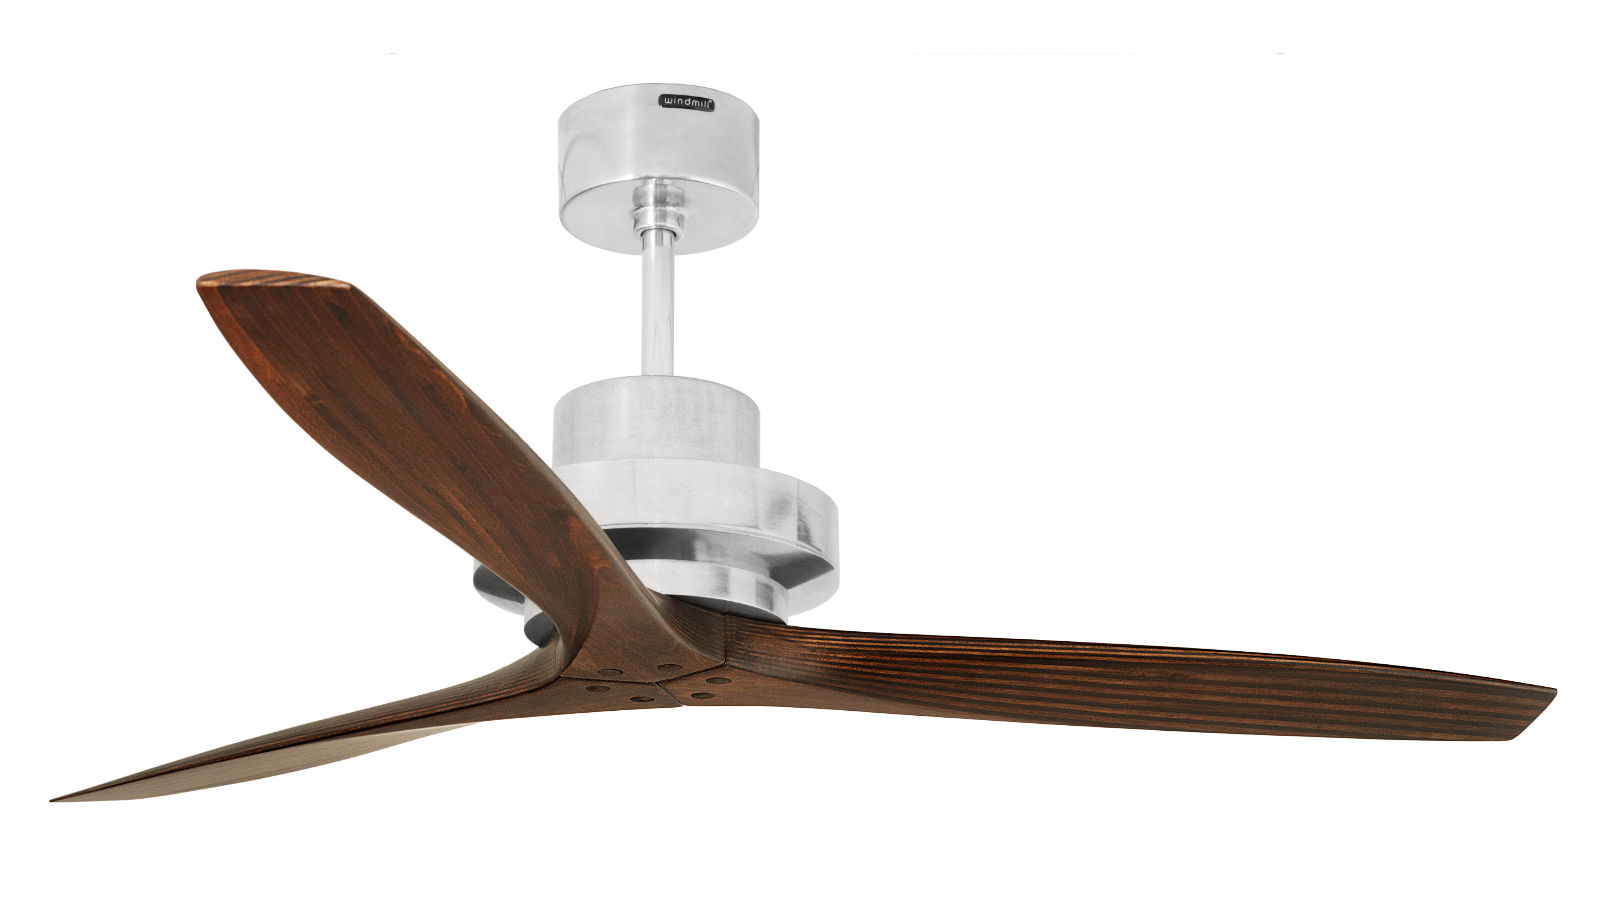 Spitfire designer ceiling fan with propeller blade made from solid wood motor in polished aluminum elegant modern designer ceiling fan